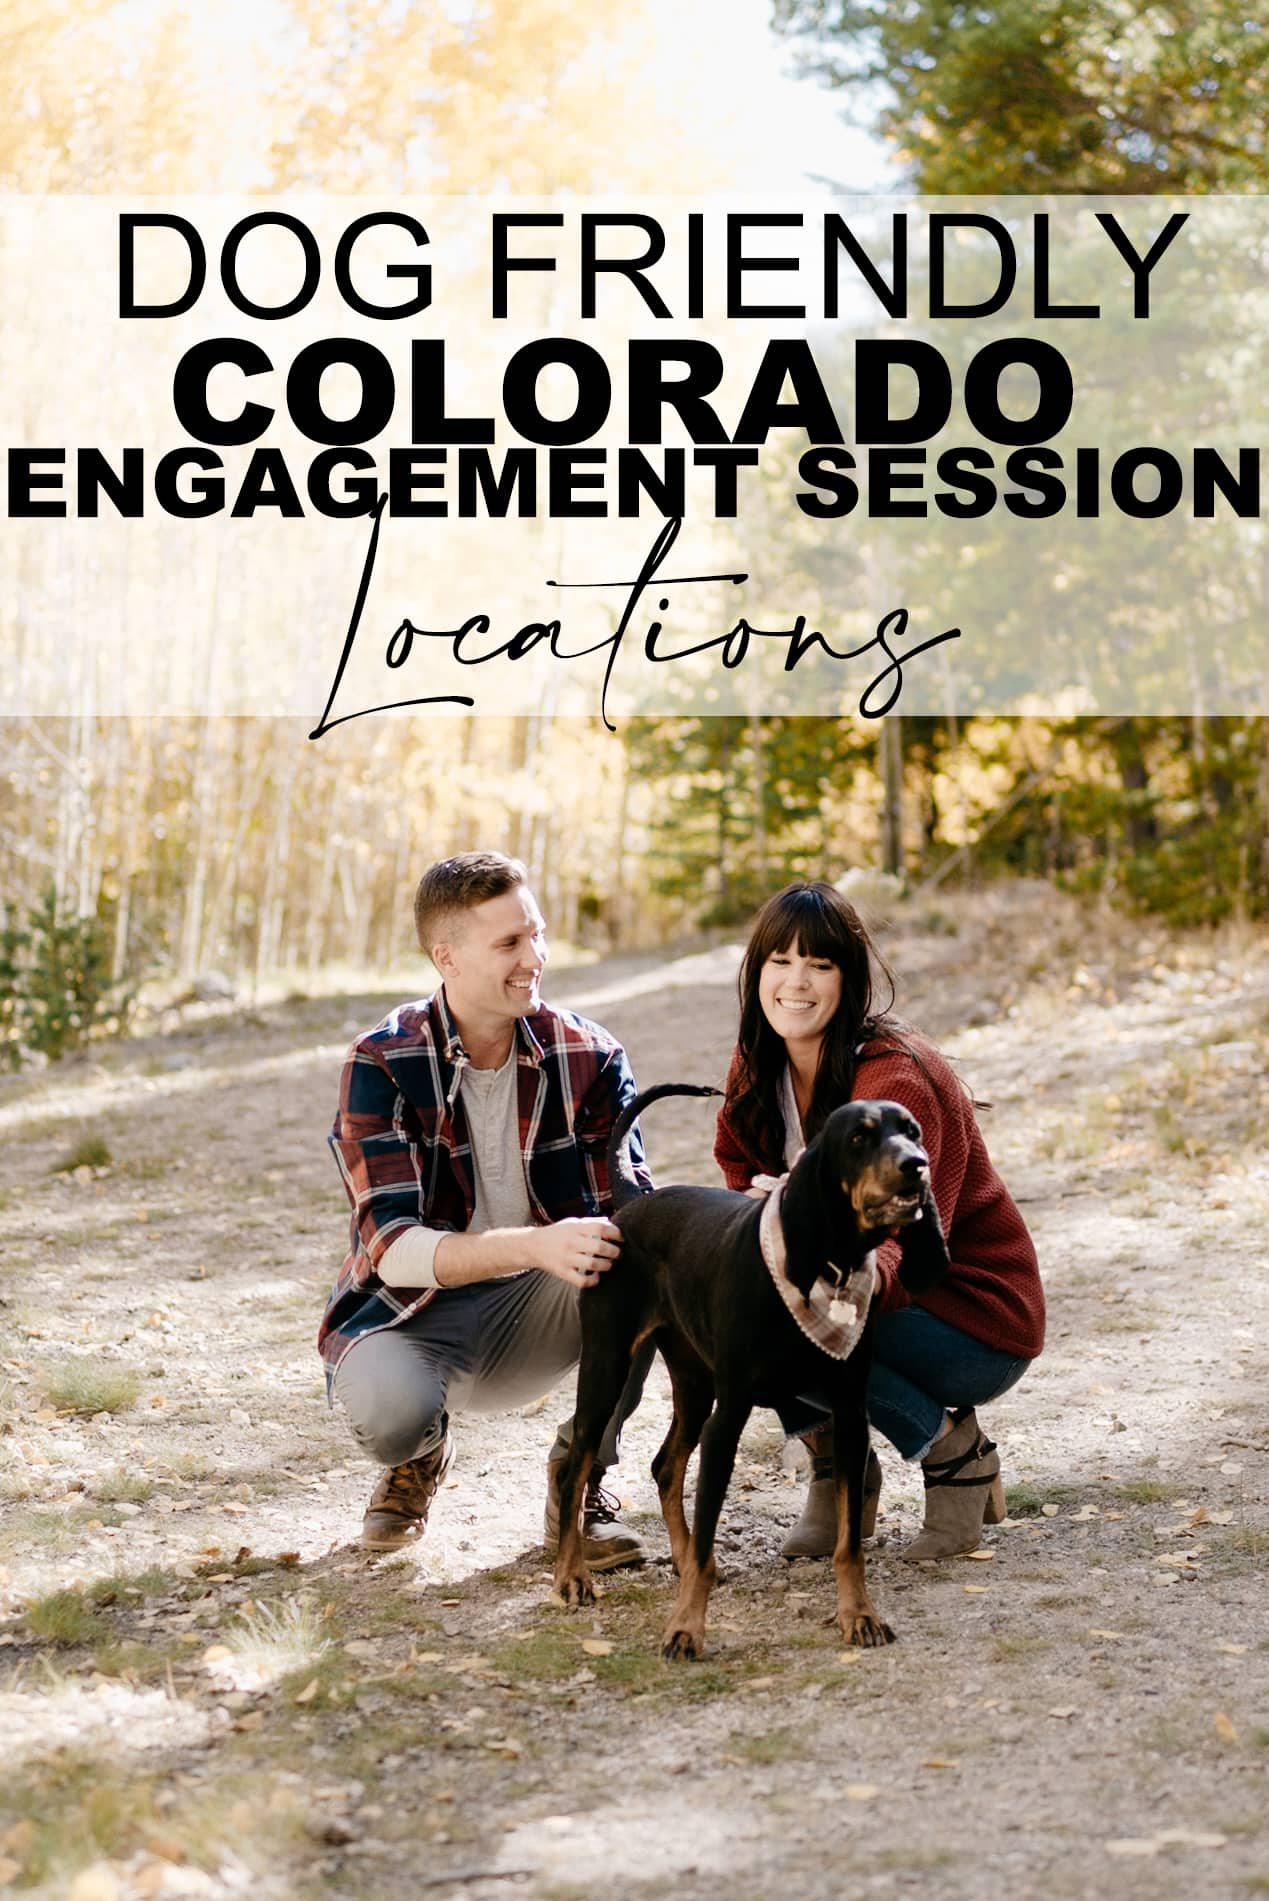 Dog Friendly Colorado Engagement Session Locations